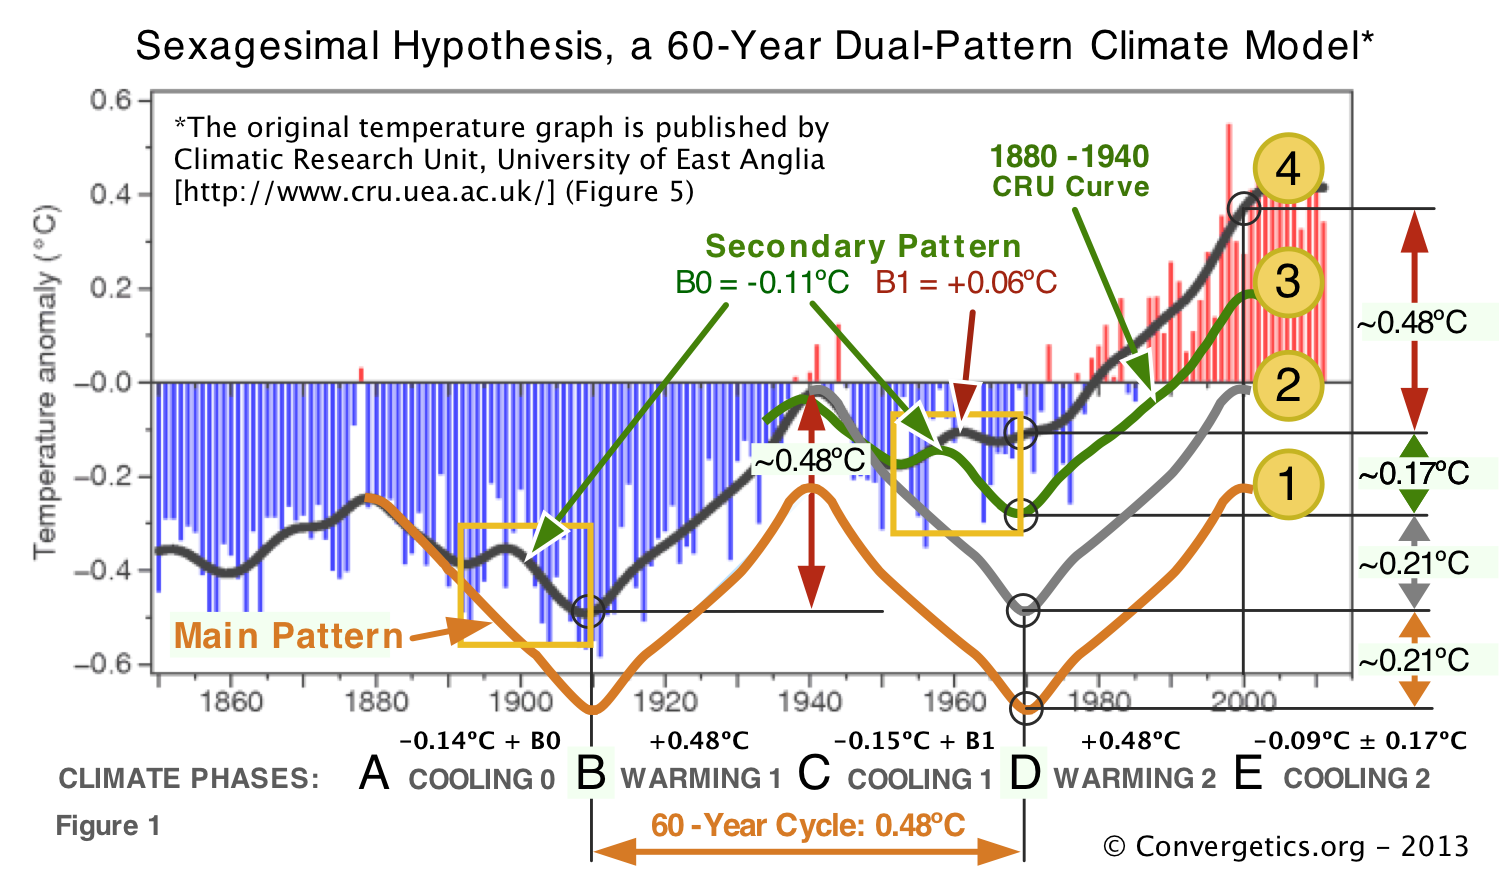 The 2013 Sexagesimal Climate Model Shows Climate Change Is Natural